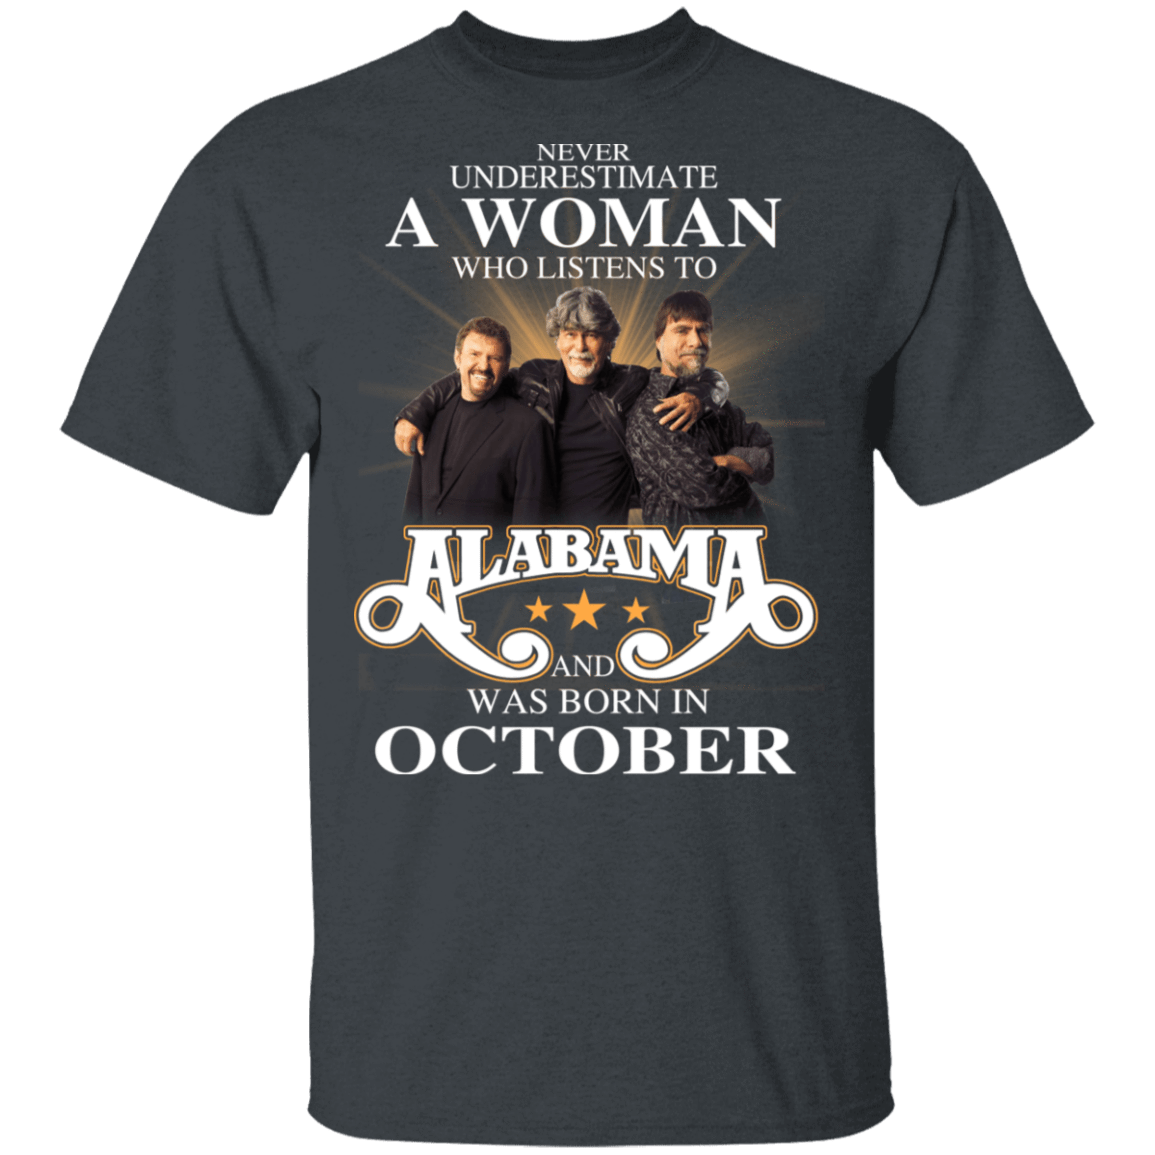 A Woman Who Listens To Alabama And Was Born In October T-Shirts, Hoodies, Tank 1049-9957-81138097-48192 - Tee Ript